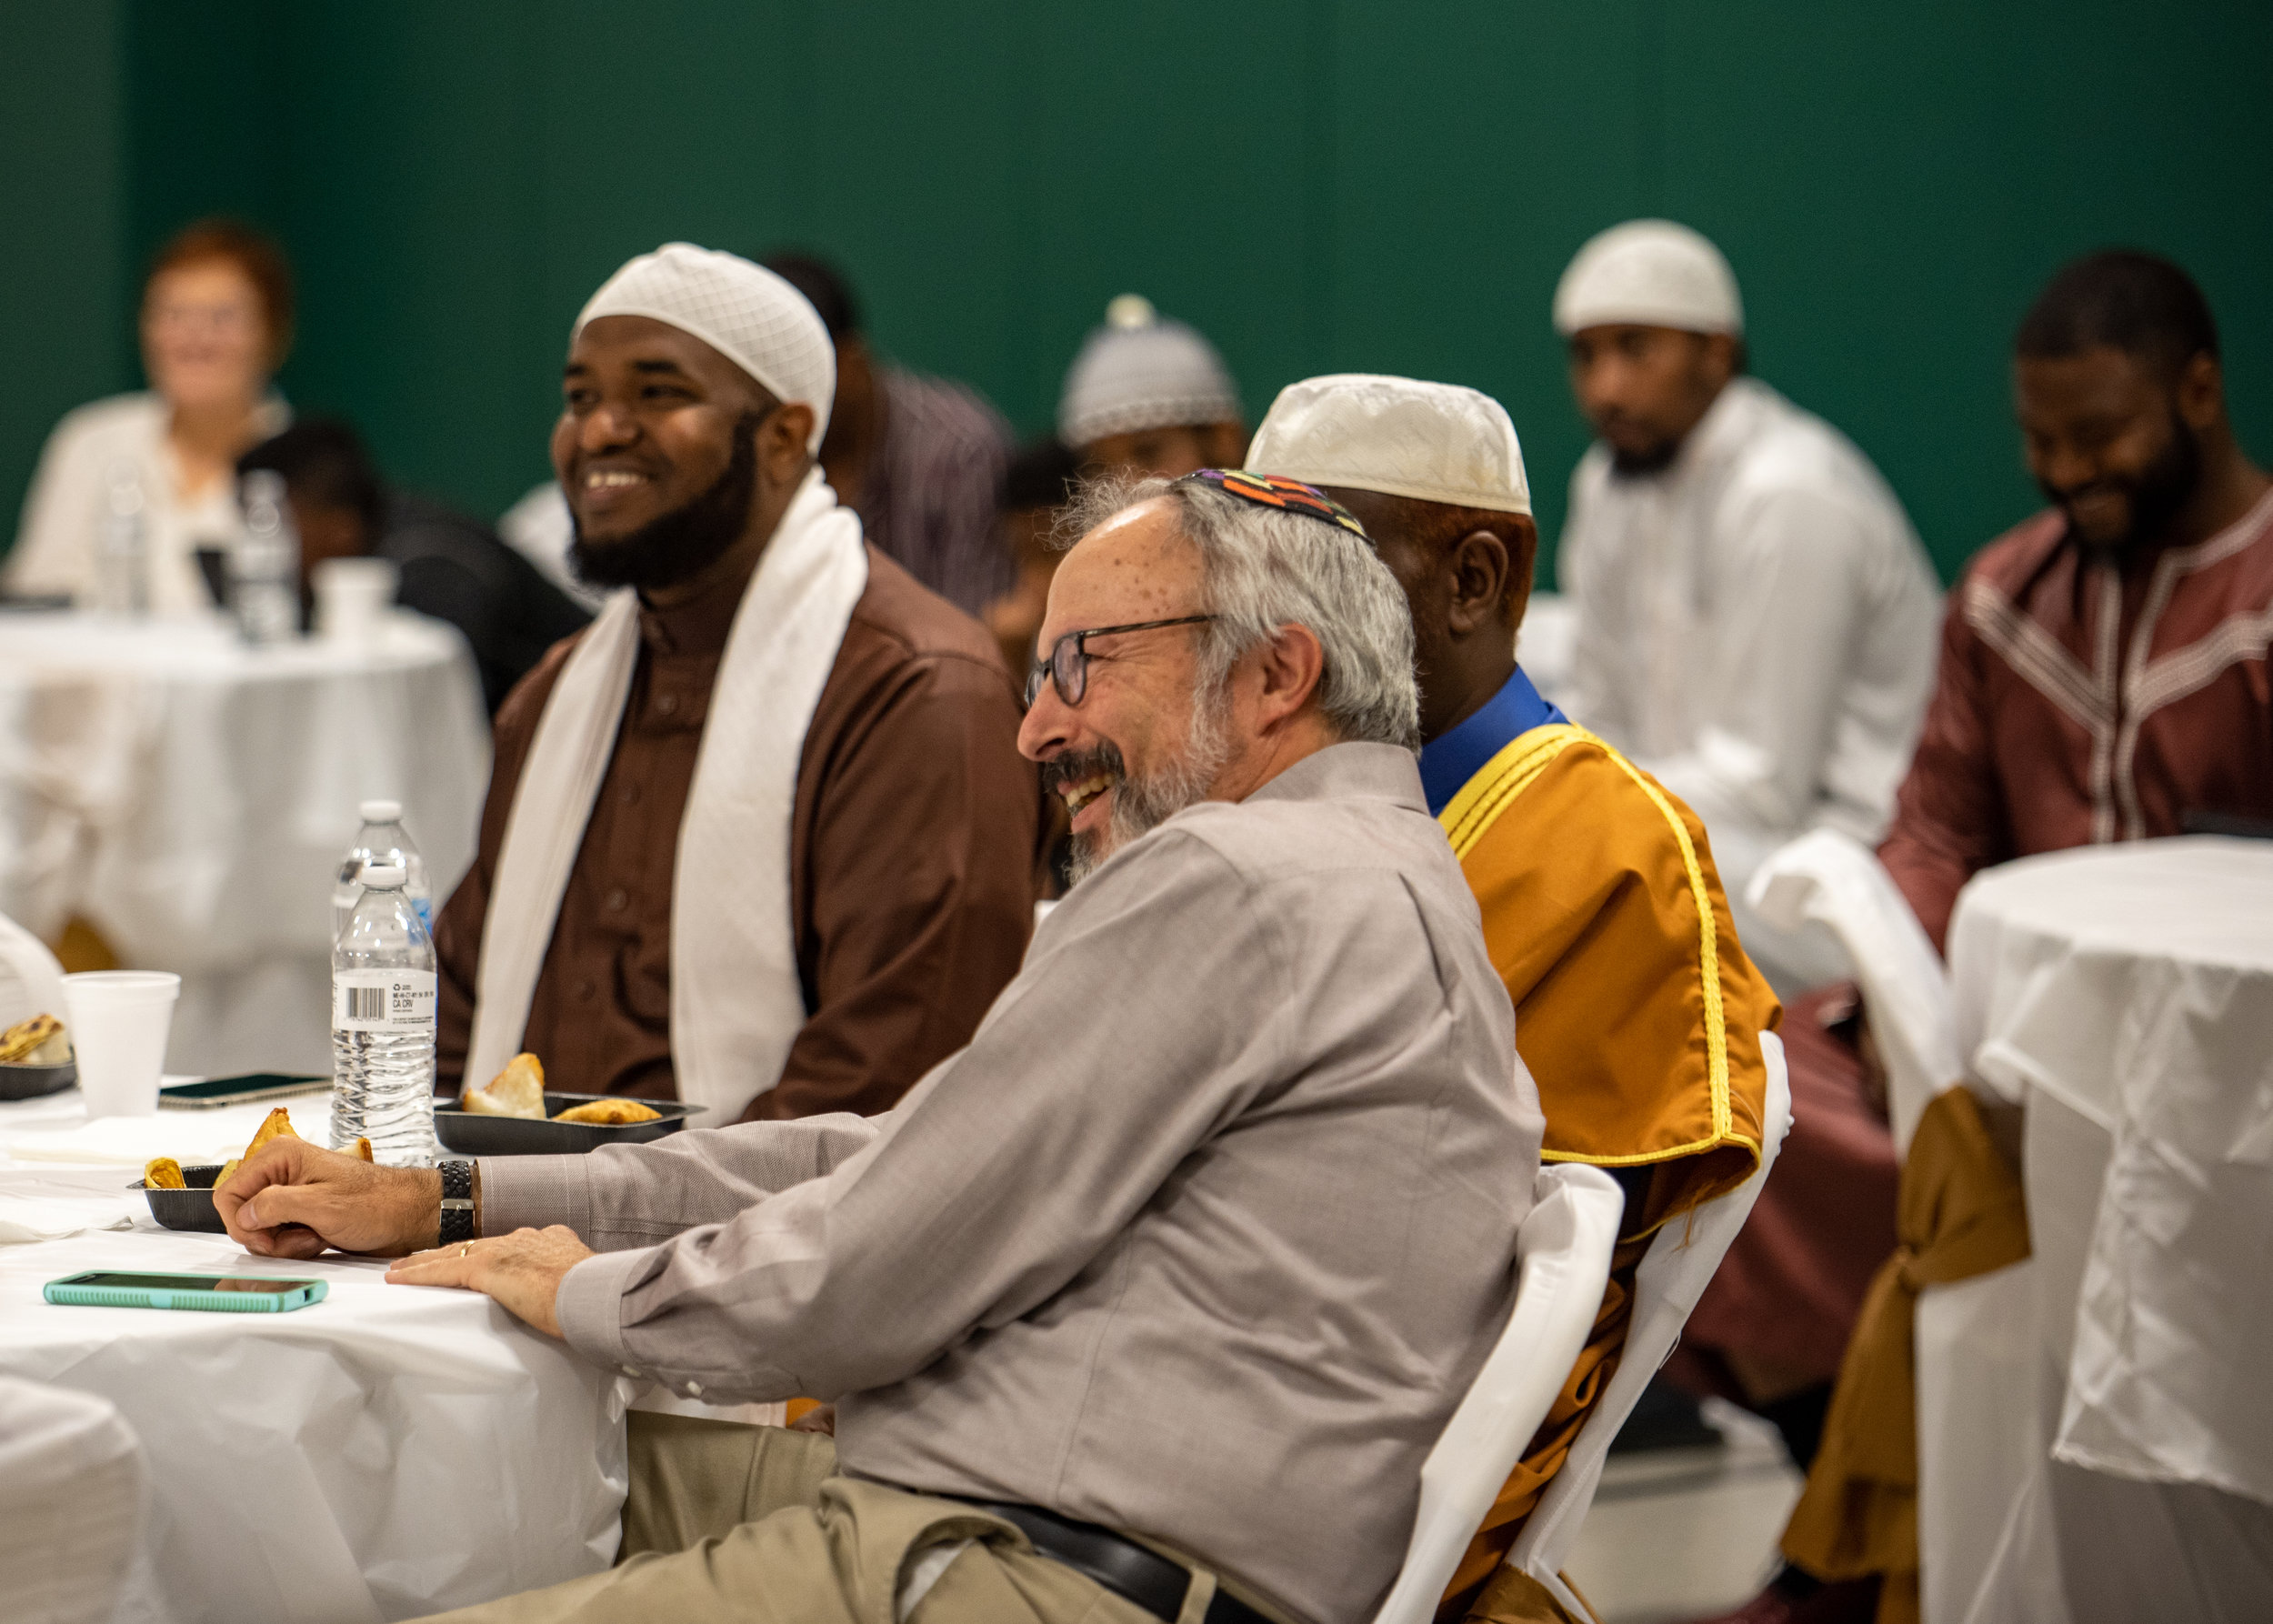 Meet Your Muslim Neighbor - Muslim and non-Muslims came together at the ABUBAKAR ASIDDIQ ISLAMIC CENTER in collaboration with Faith in Public Life08/04/2019click to view more